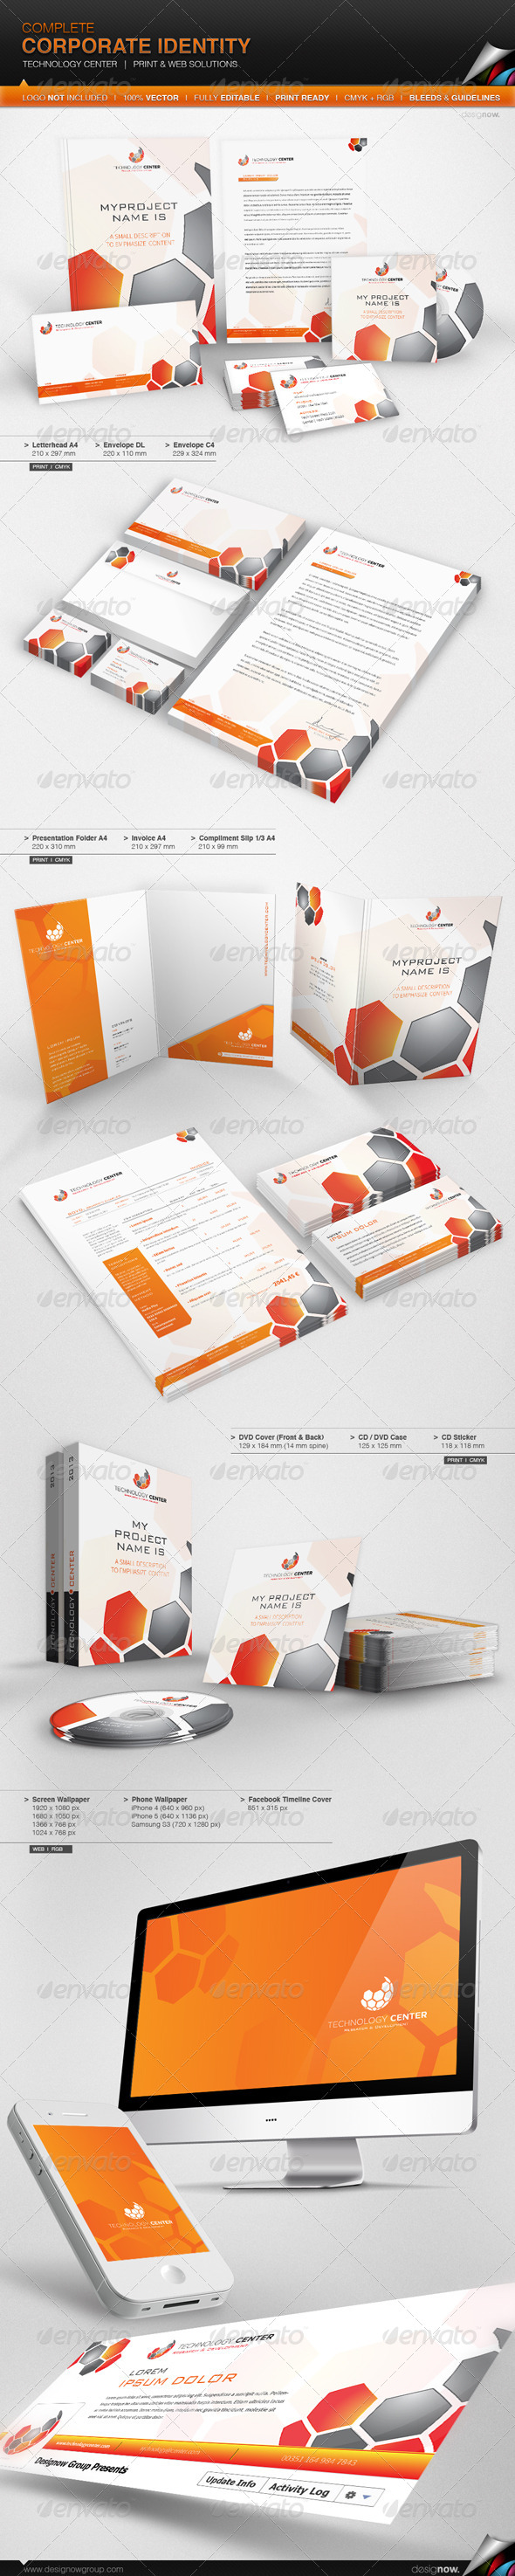 GraphicRiver Corporate Identity Technology Center 4369877